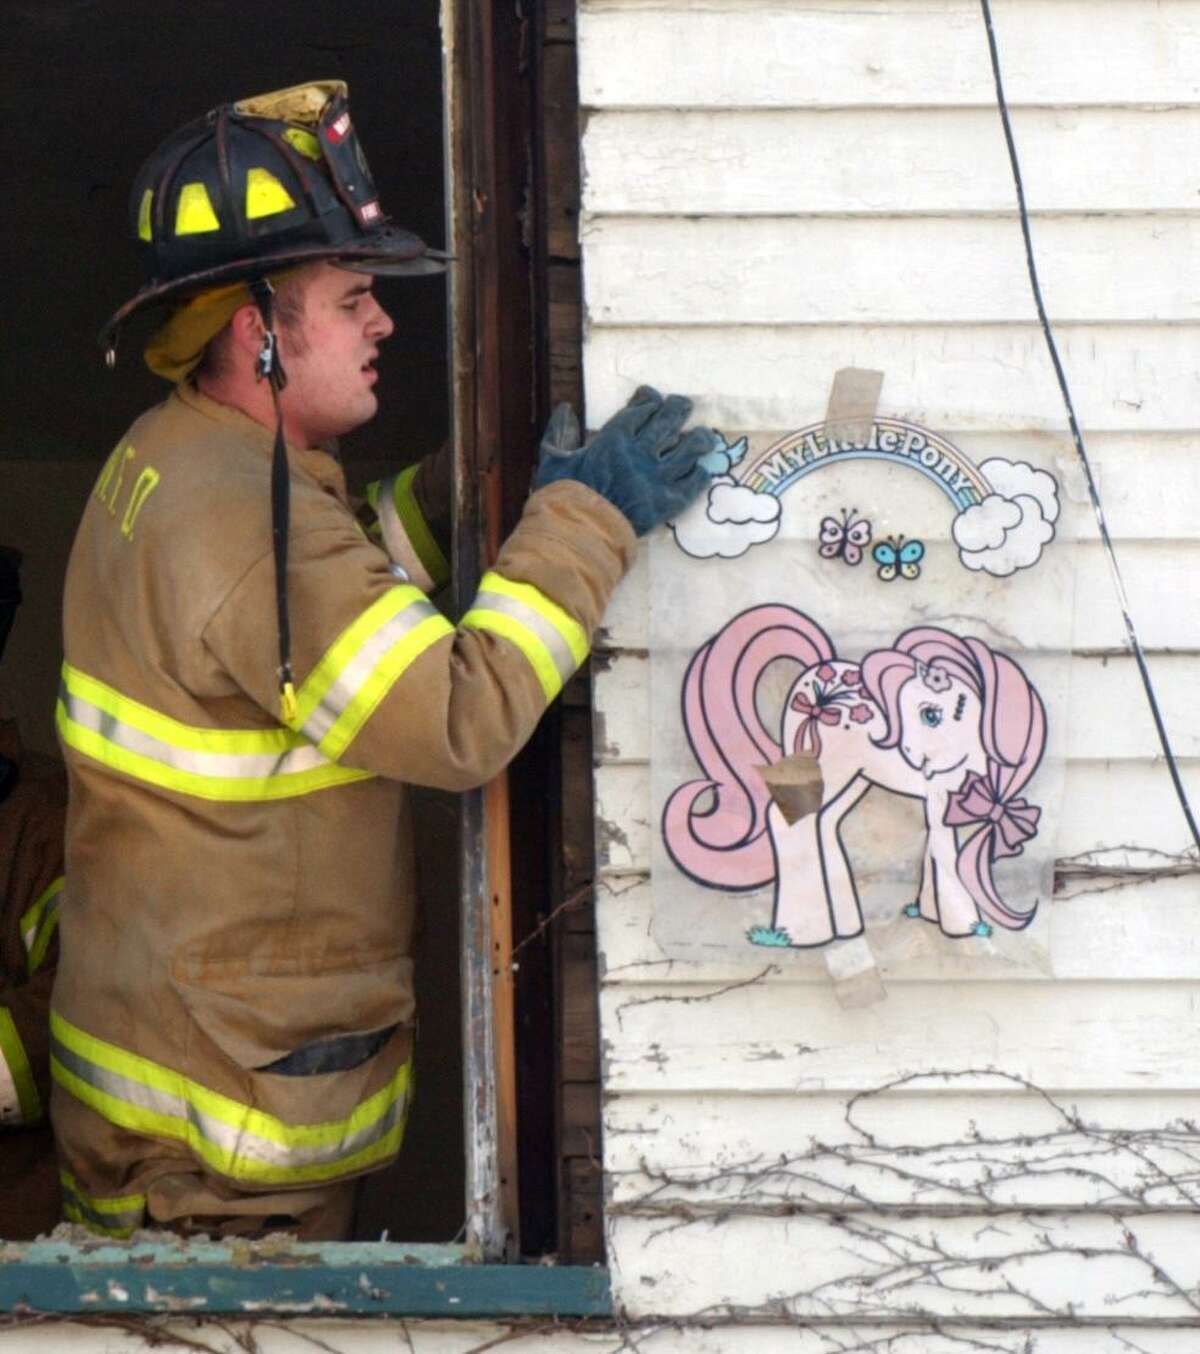 Norwalk firefighter Patrick St. Onge fixes a window decal on the outside of a Merwin Street home that was slated for demolition in 2014. St. Onge has been suspended for one week without pay after he was accused of making anti-Semitic comments in front of a Jewish member of the department.